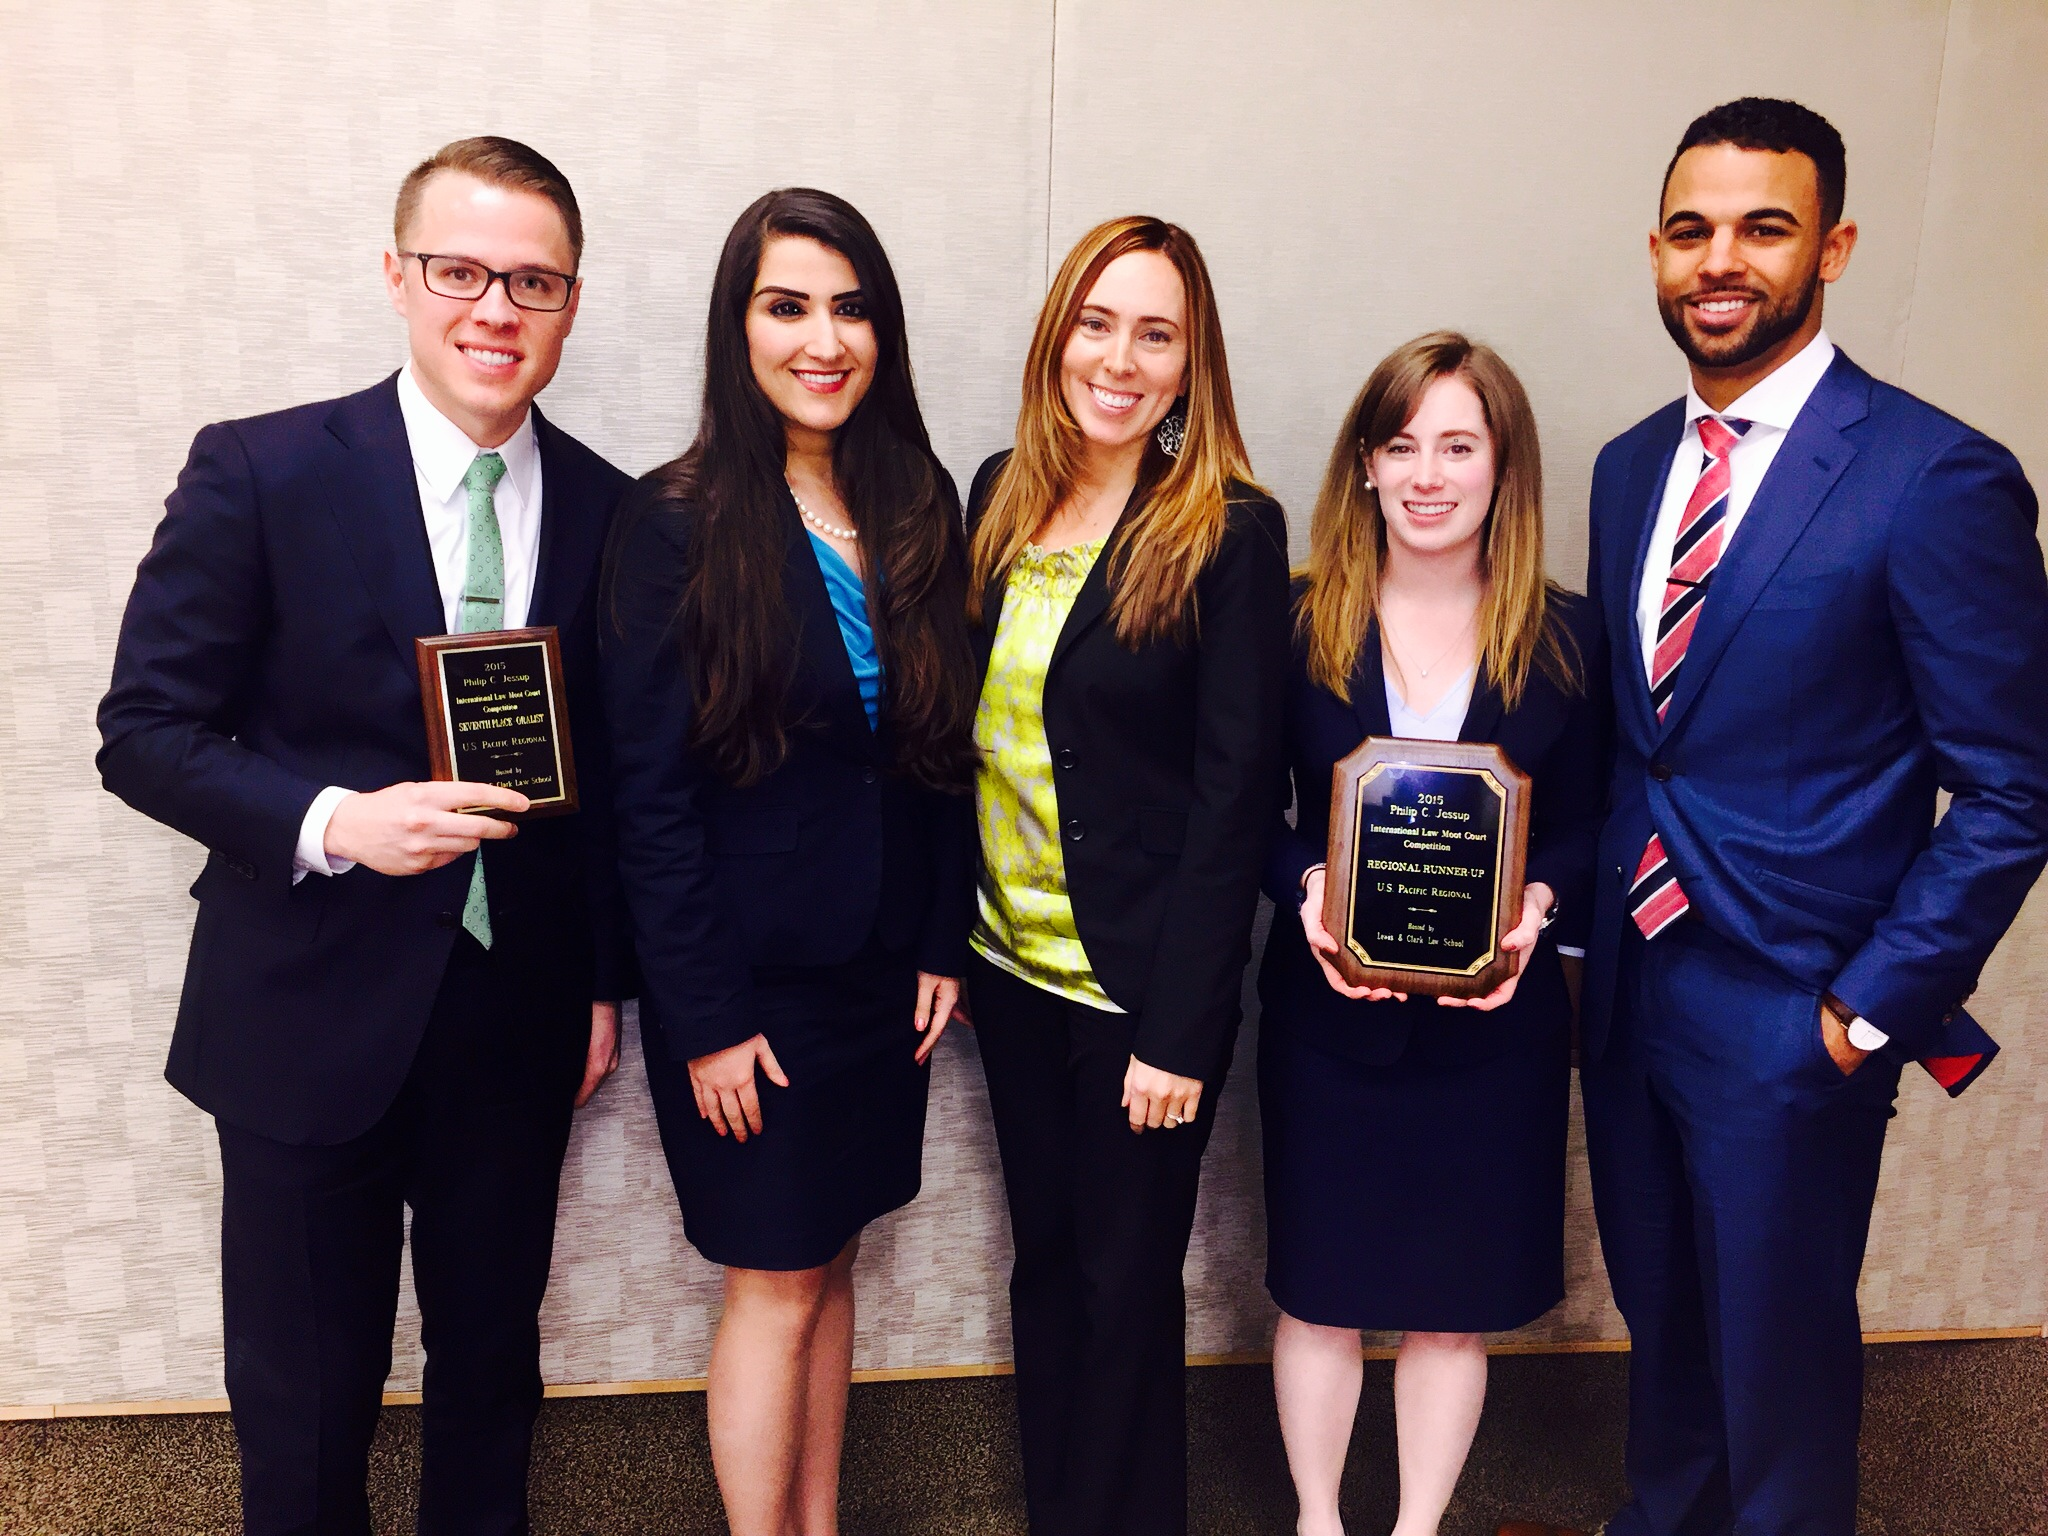 Jessup 2015 team members: J. Matt Thornton, Maral Shoaei, Megan Matthews, Alex Jennings, Philip Nickerson